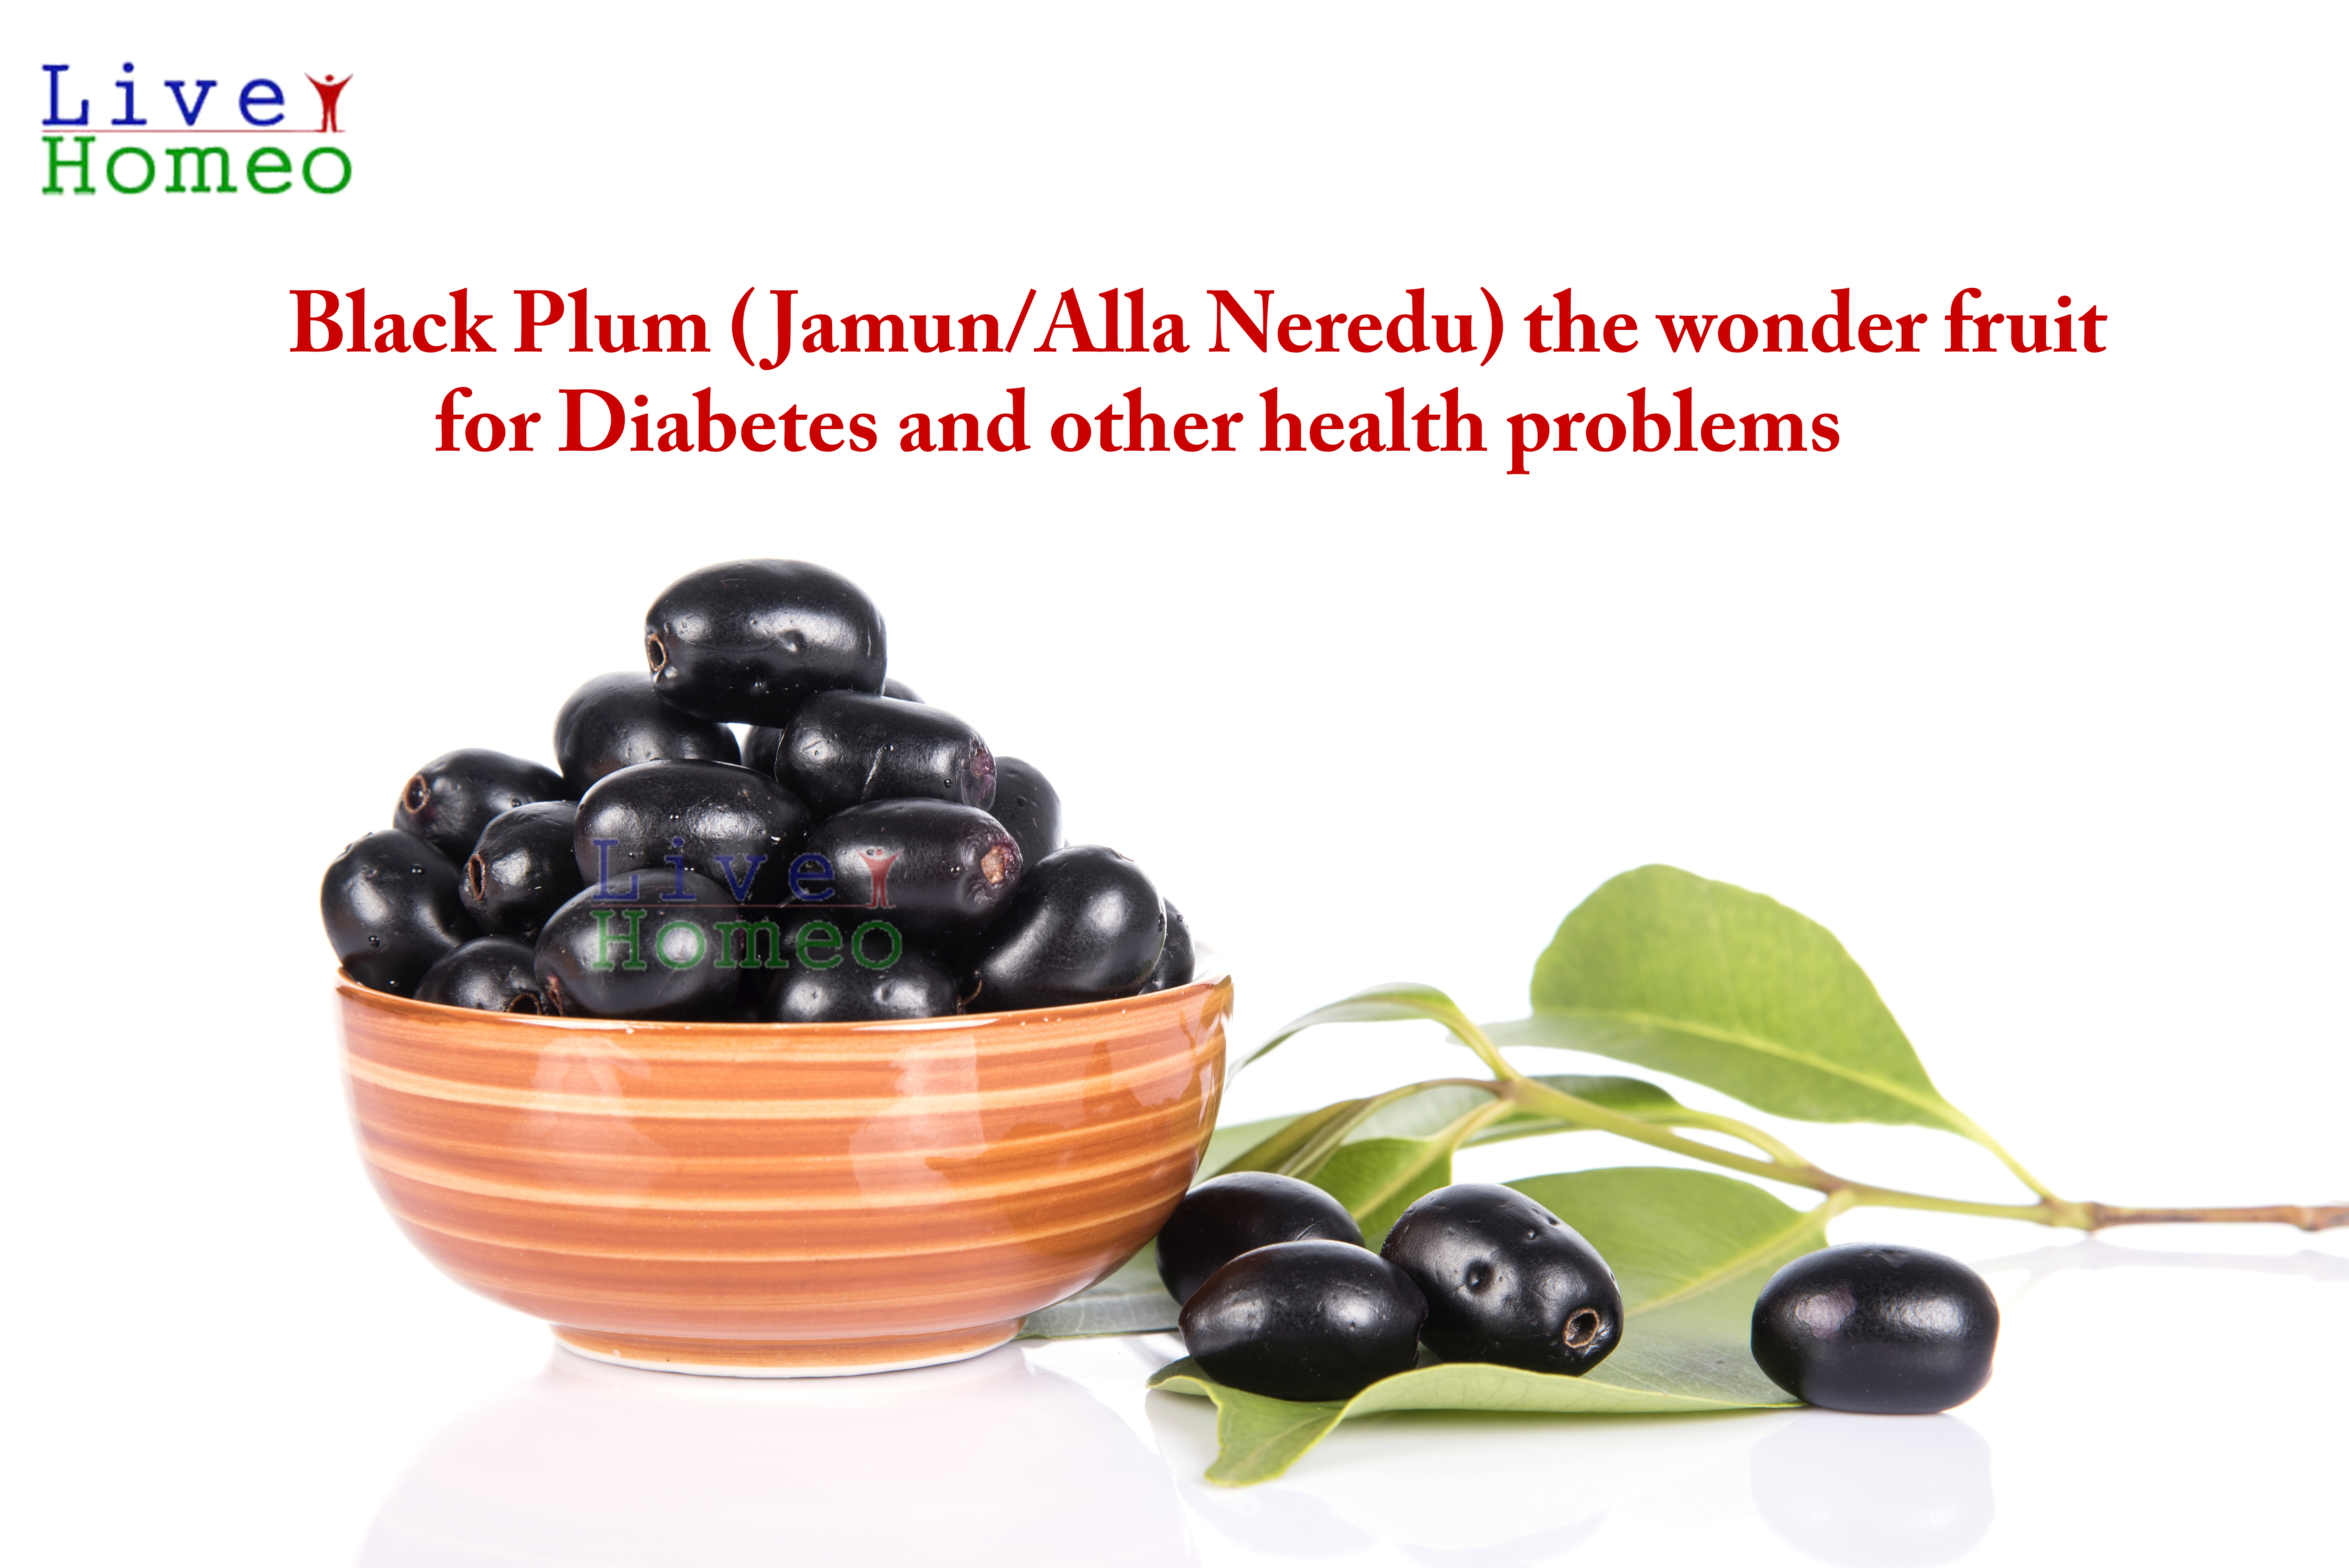 Black Plum the wonder fruit for Diabetes and other health problems